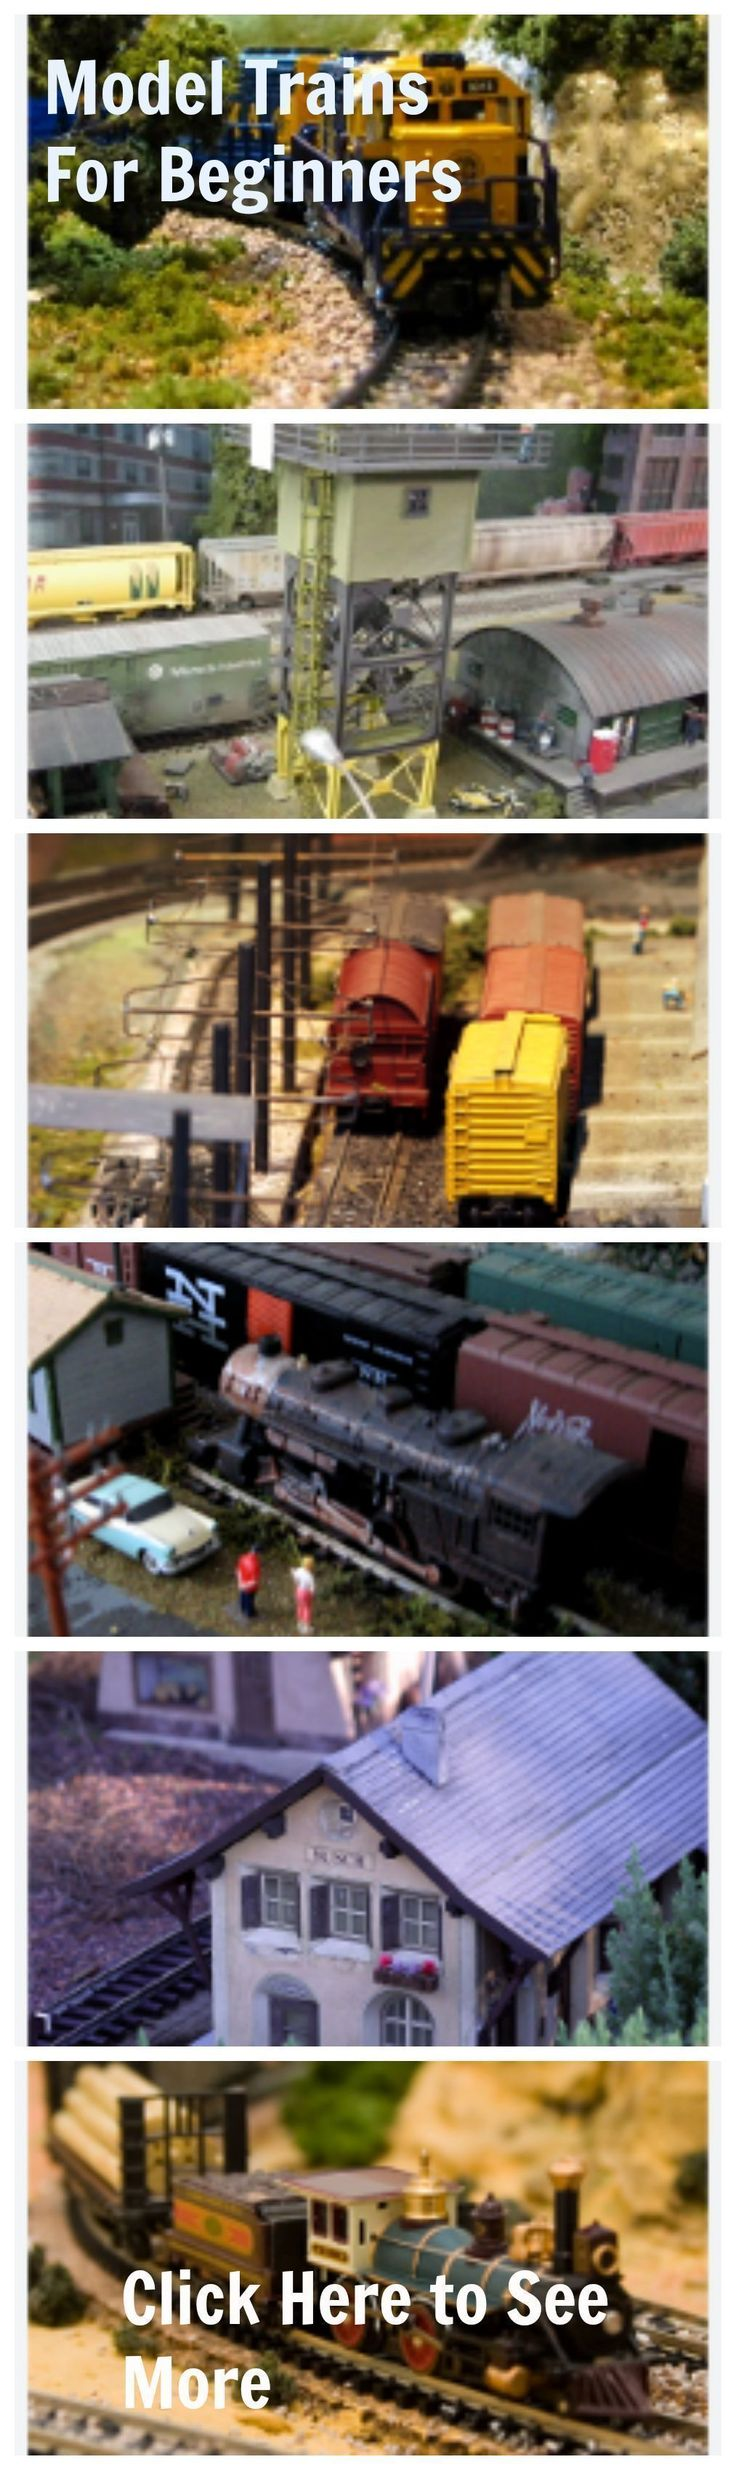 """""""Model Trains for Beginners"""" Contains The Vital Secrets You Must Have To Create The Model Train layout of Your Dreams! http://fbshare.info/model-trains-for-beginners #electrictrainsets #modeltrainlayouts #lioneltrainlayouts"""